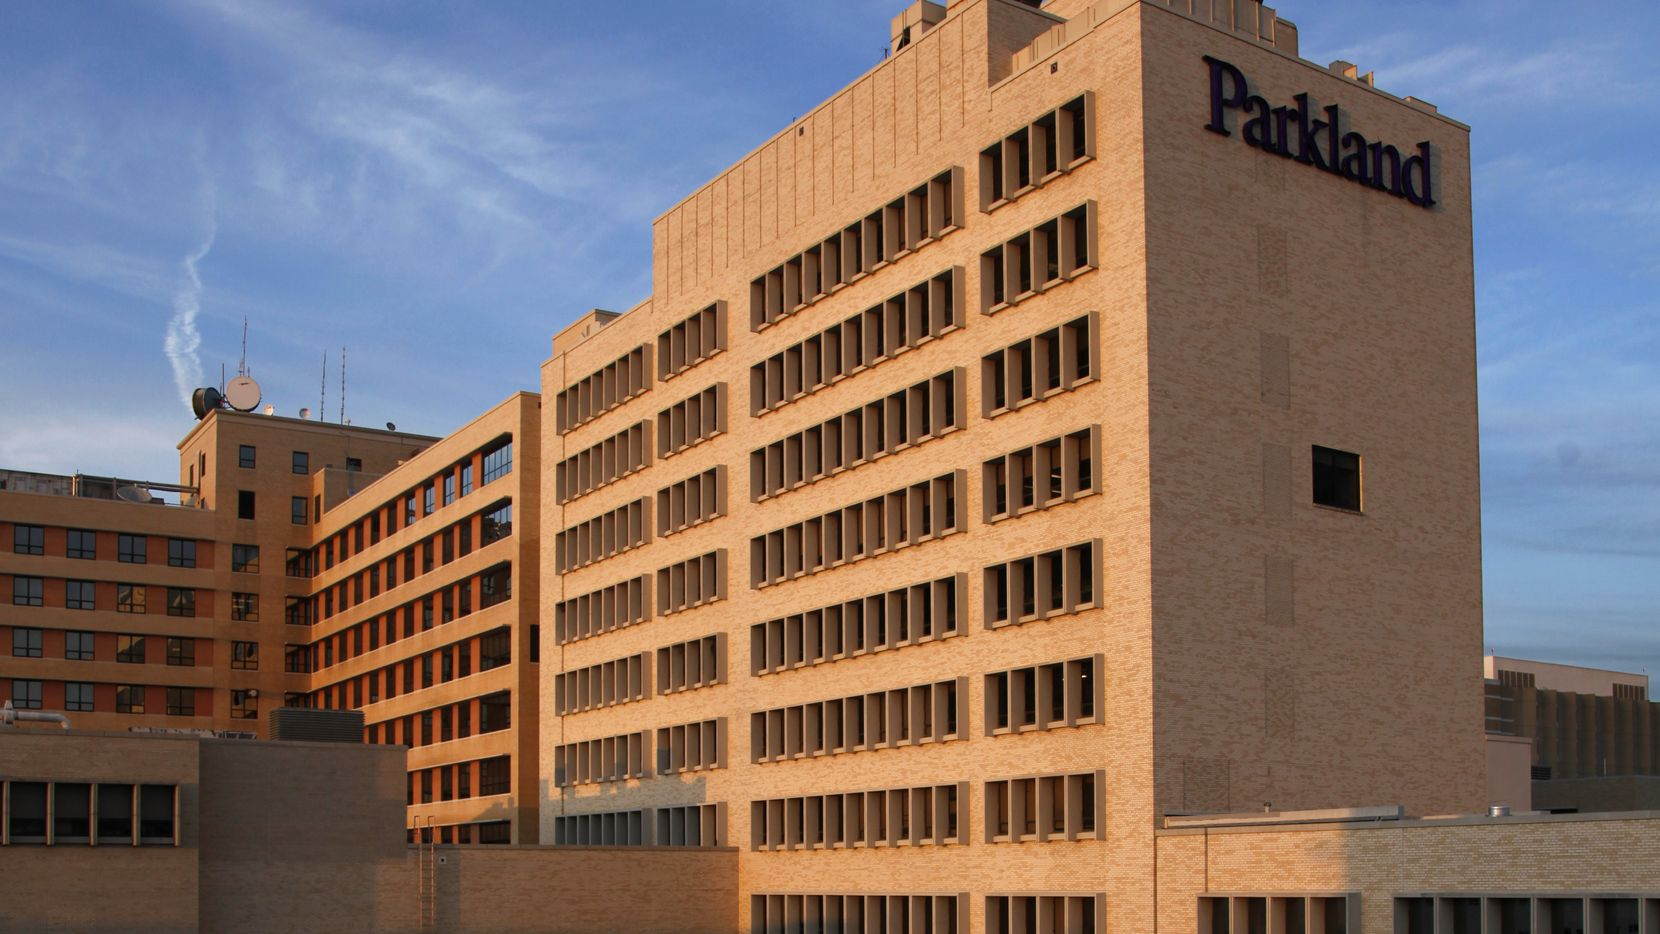 The old Parkland Hospital complex with more than 1 million square feet has been up for sale since last year.